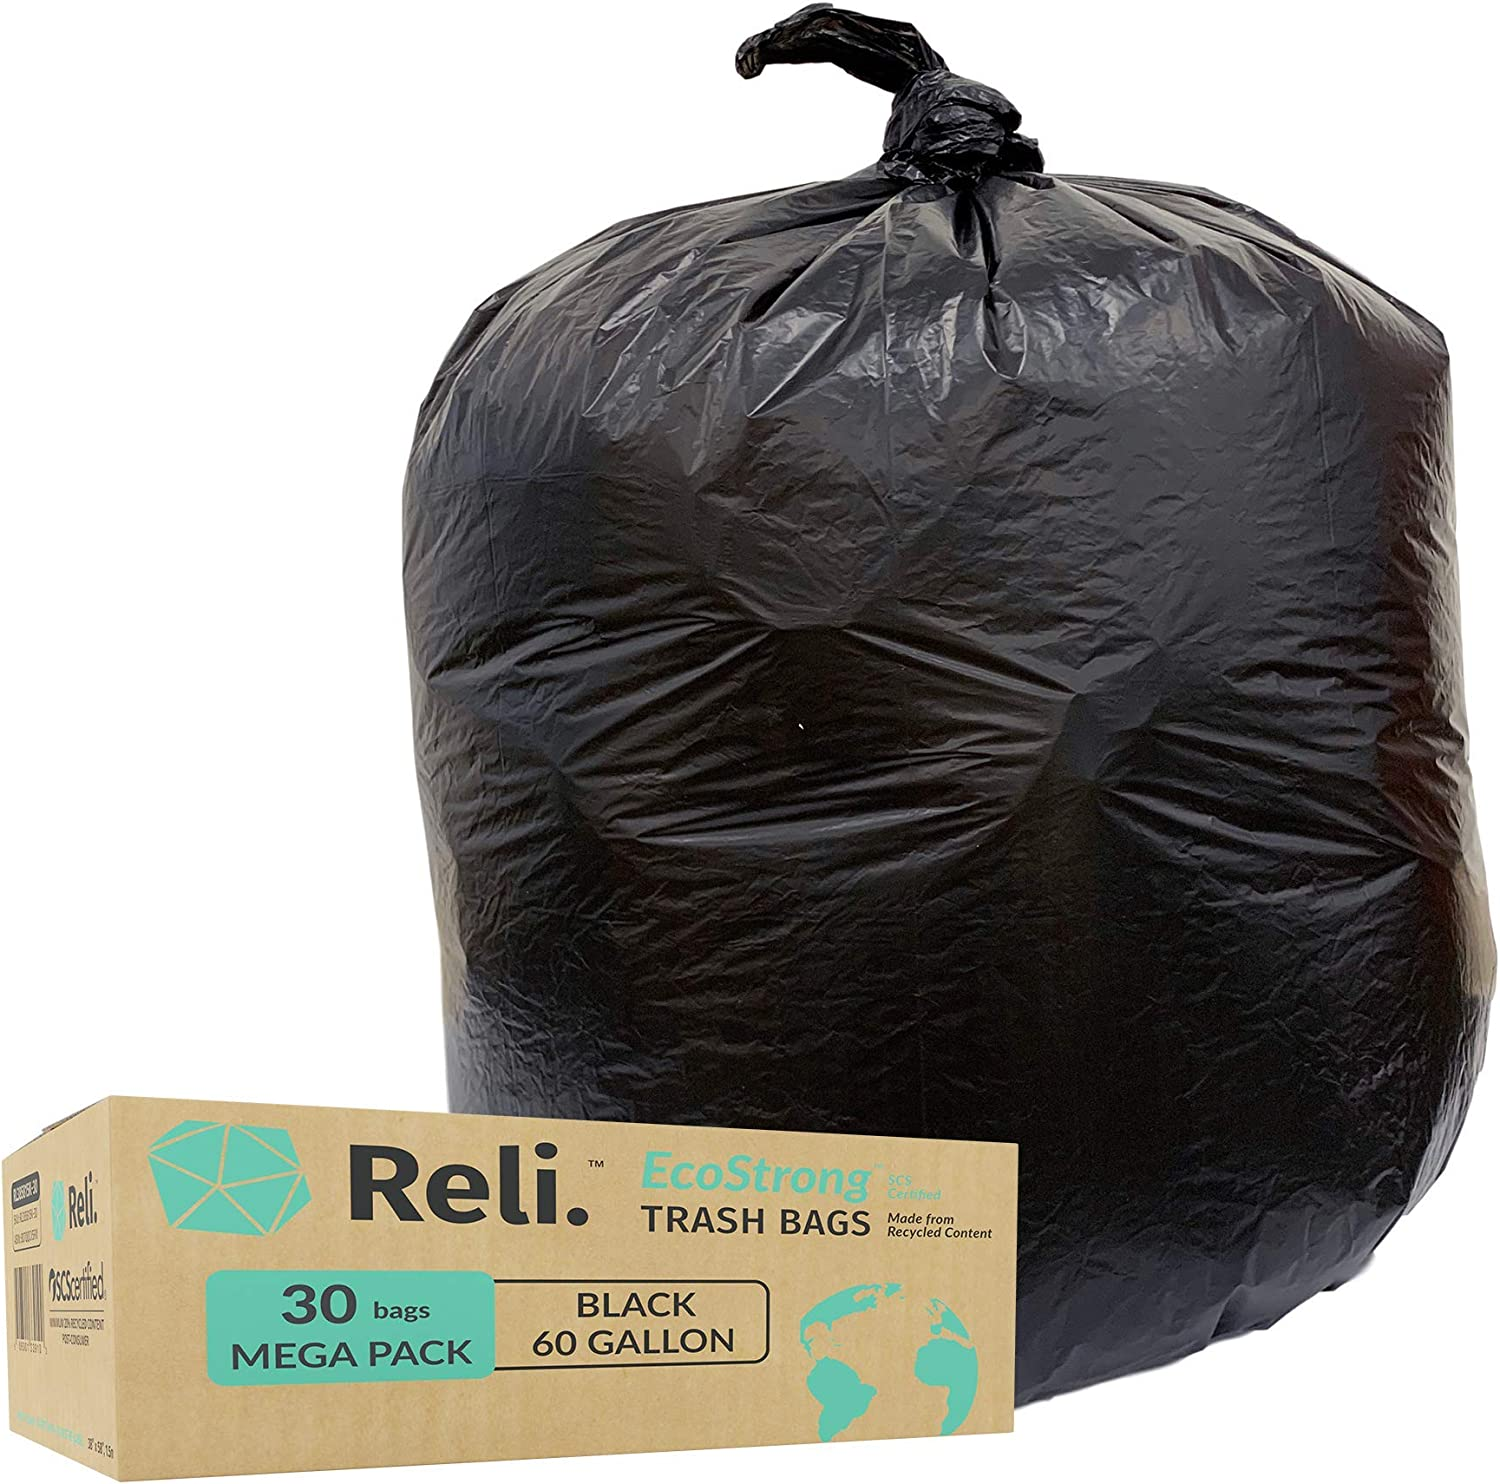 Reli. EcoStrong 55 Gallon Trash Bags (30 Count) Eco-Friendly Recyclable - Black Garbage Bags 55 Gallon - 60 Gallon Capacity - Made of Recycled Material - 50 Gal, 55 Gal, 60 Gal Compatible